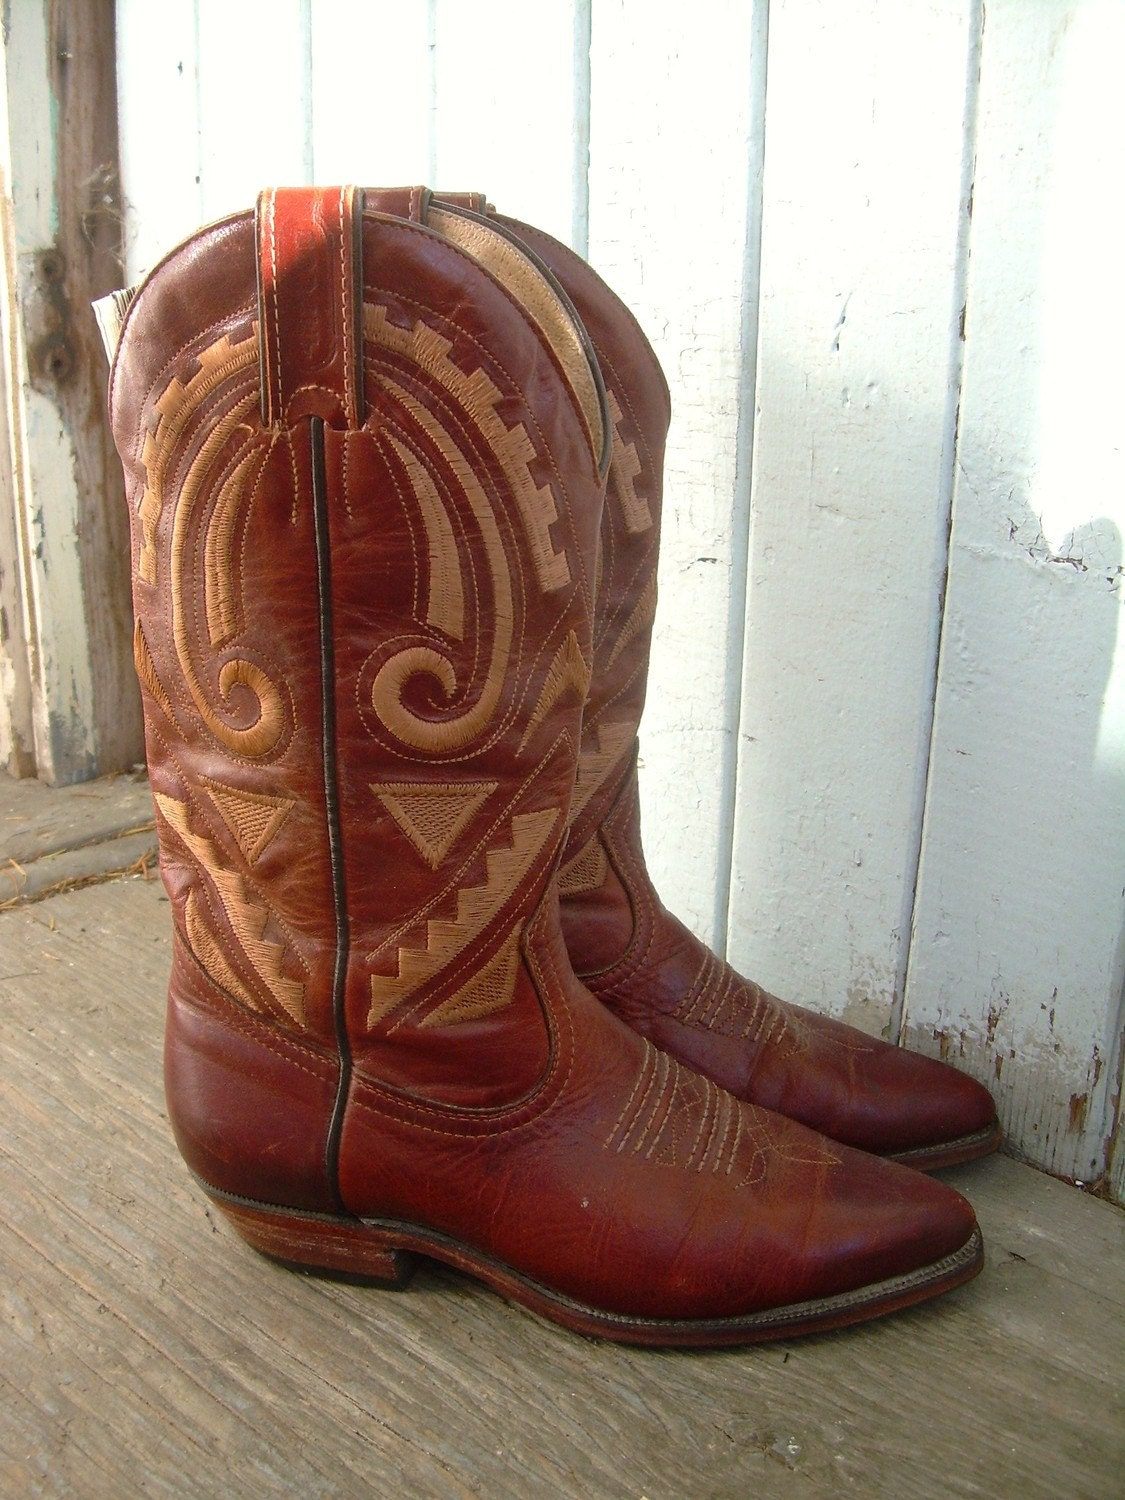 VINTAGE WOMEN'S BROWN LEATHER SOUTHWESTERN COWBOY BOOTS SZE 6 BY BOOTMEISTER